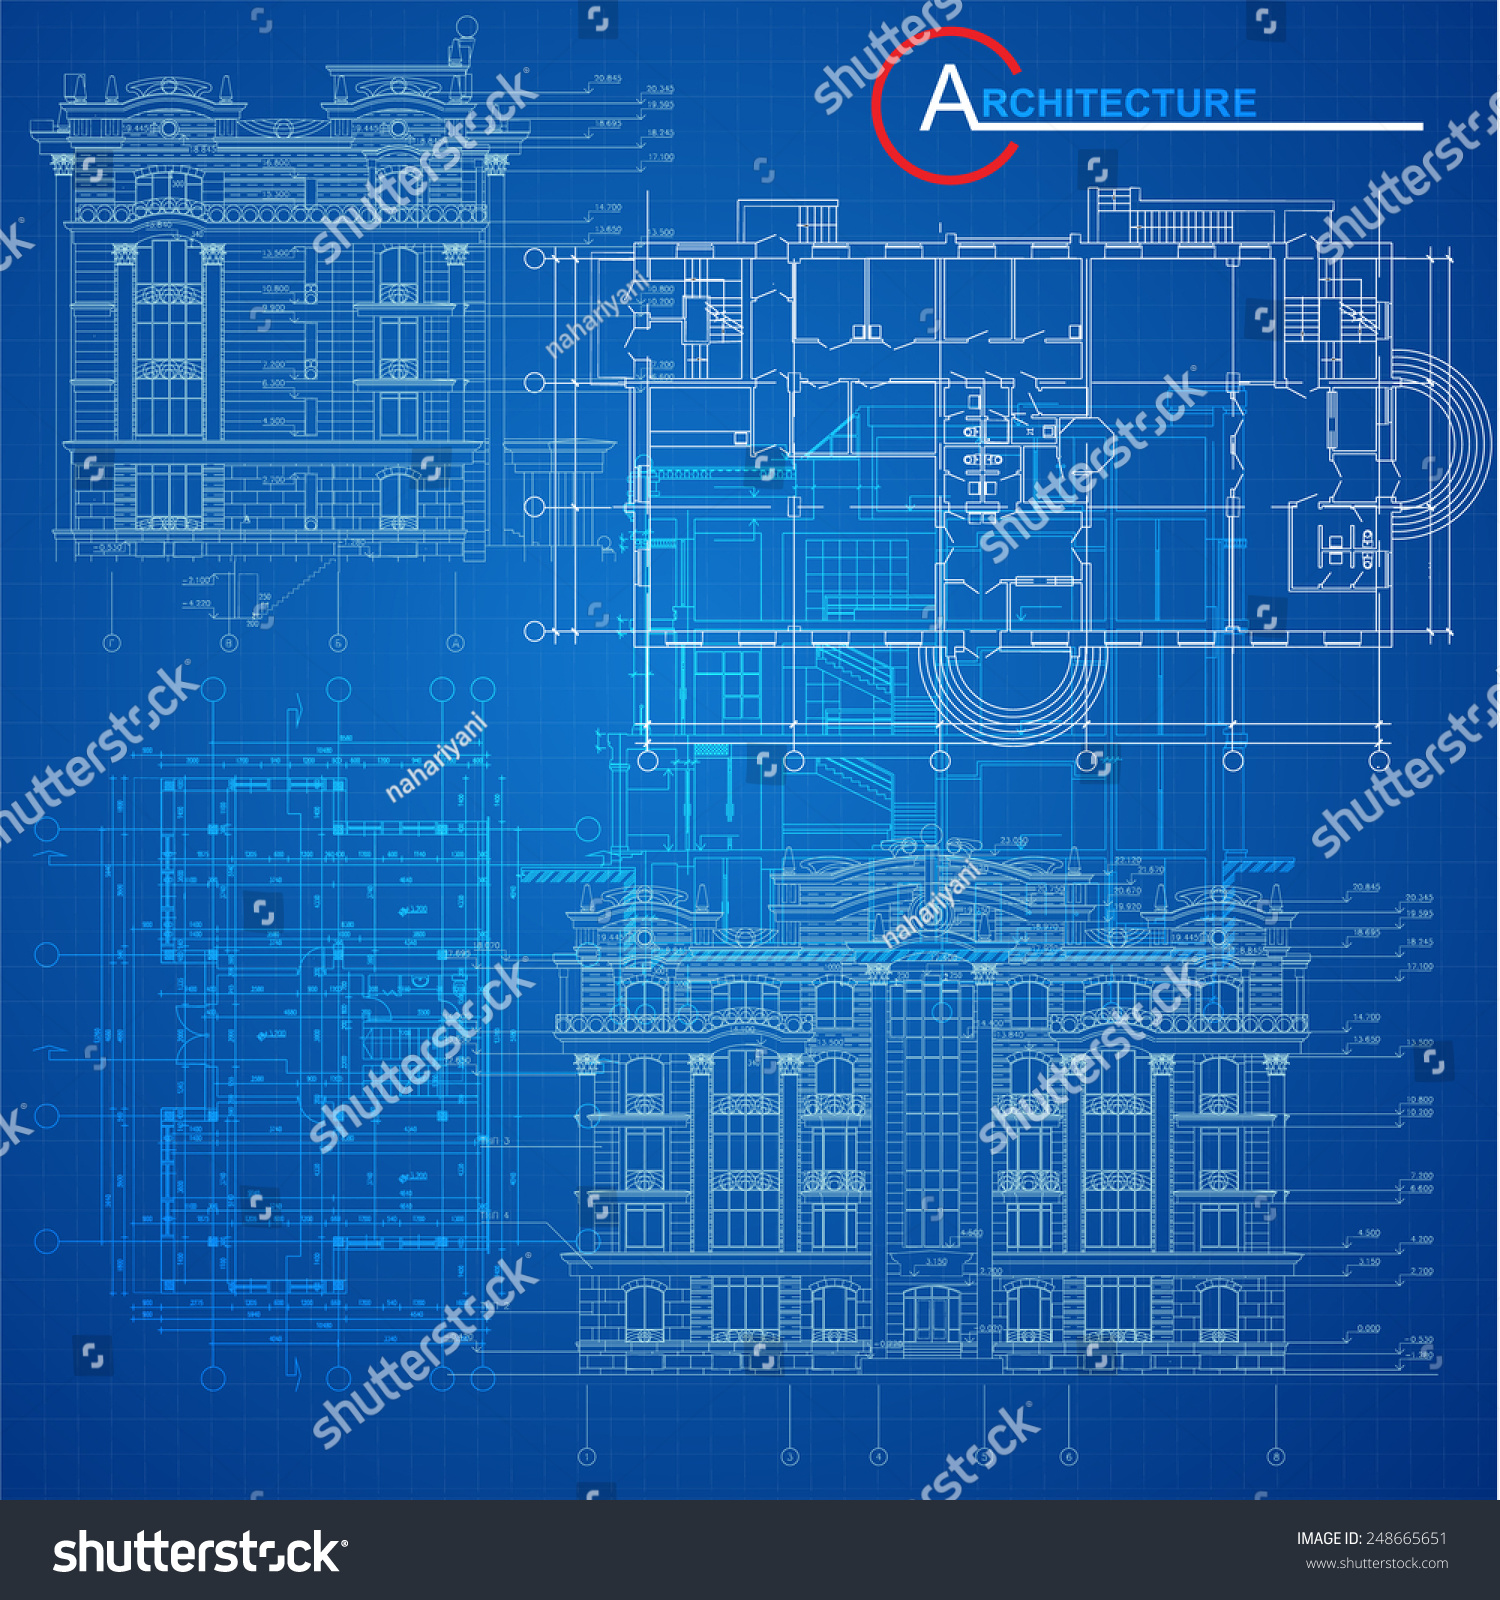 Urban blueprint vector architectural background part stock vector hd urban blueprint vector architectural background part of architectural project architectural plan malvernweather Image collections